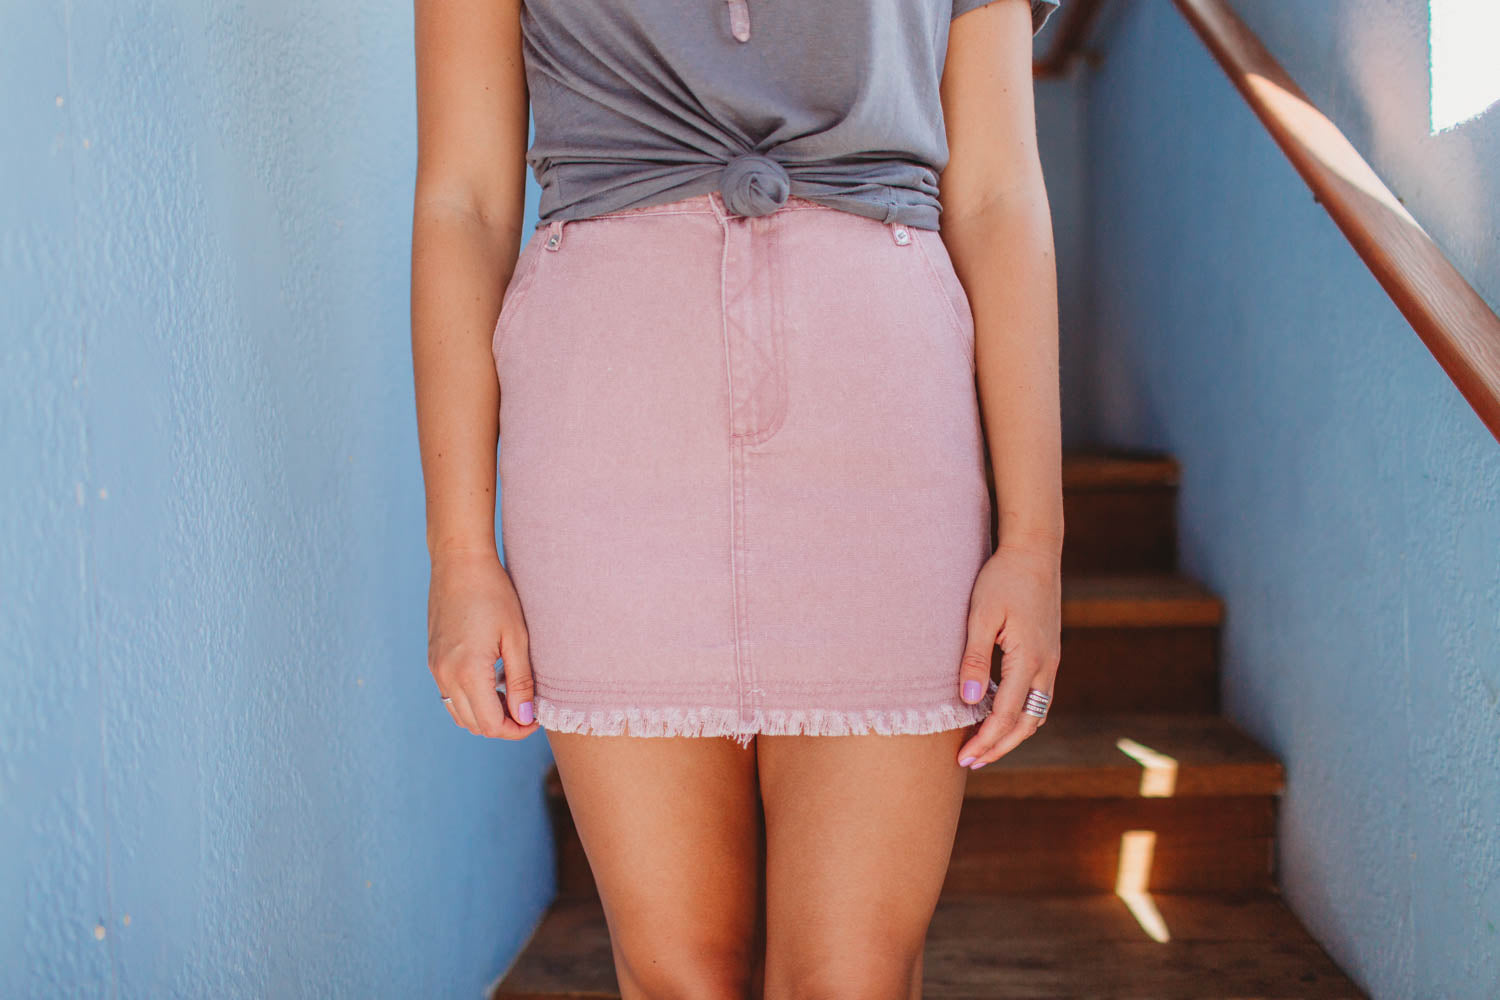 Skirt - High Waist Denim Skirt with Pockets